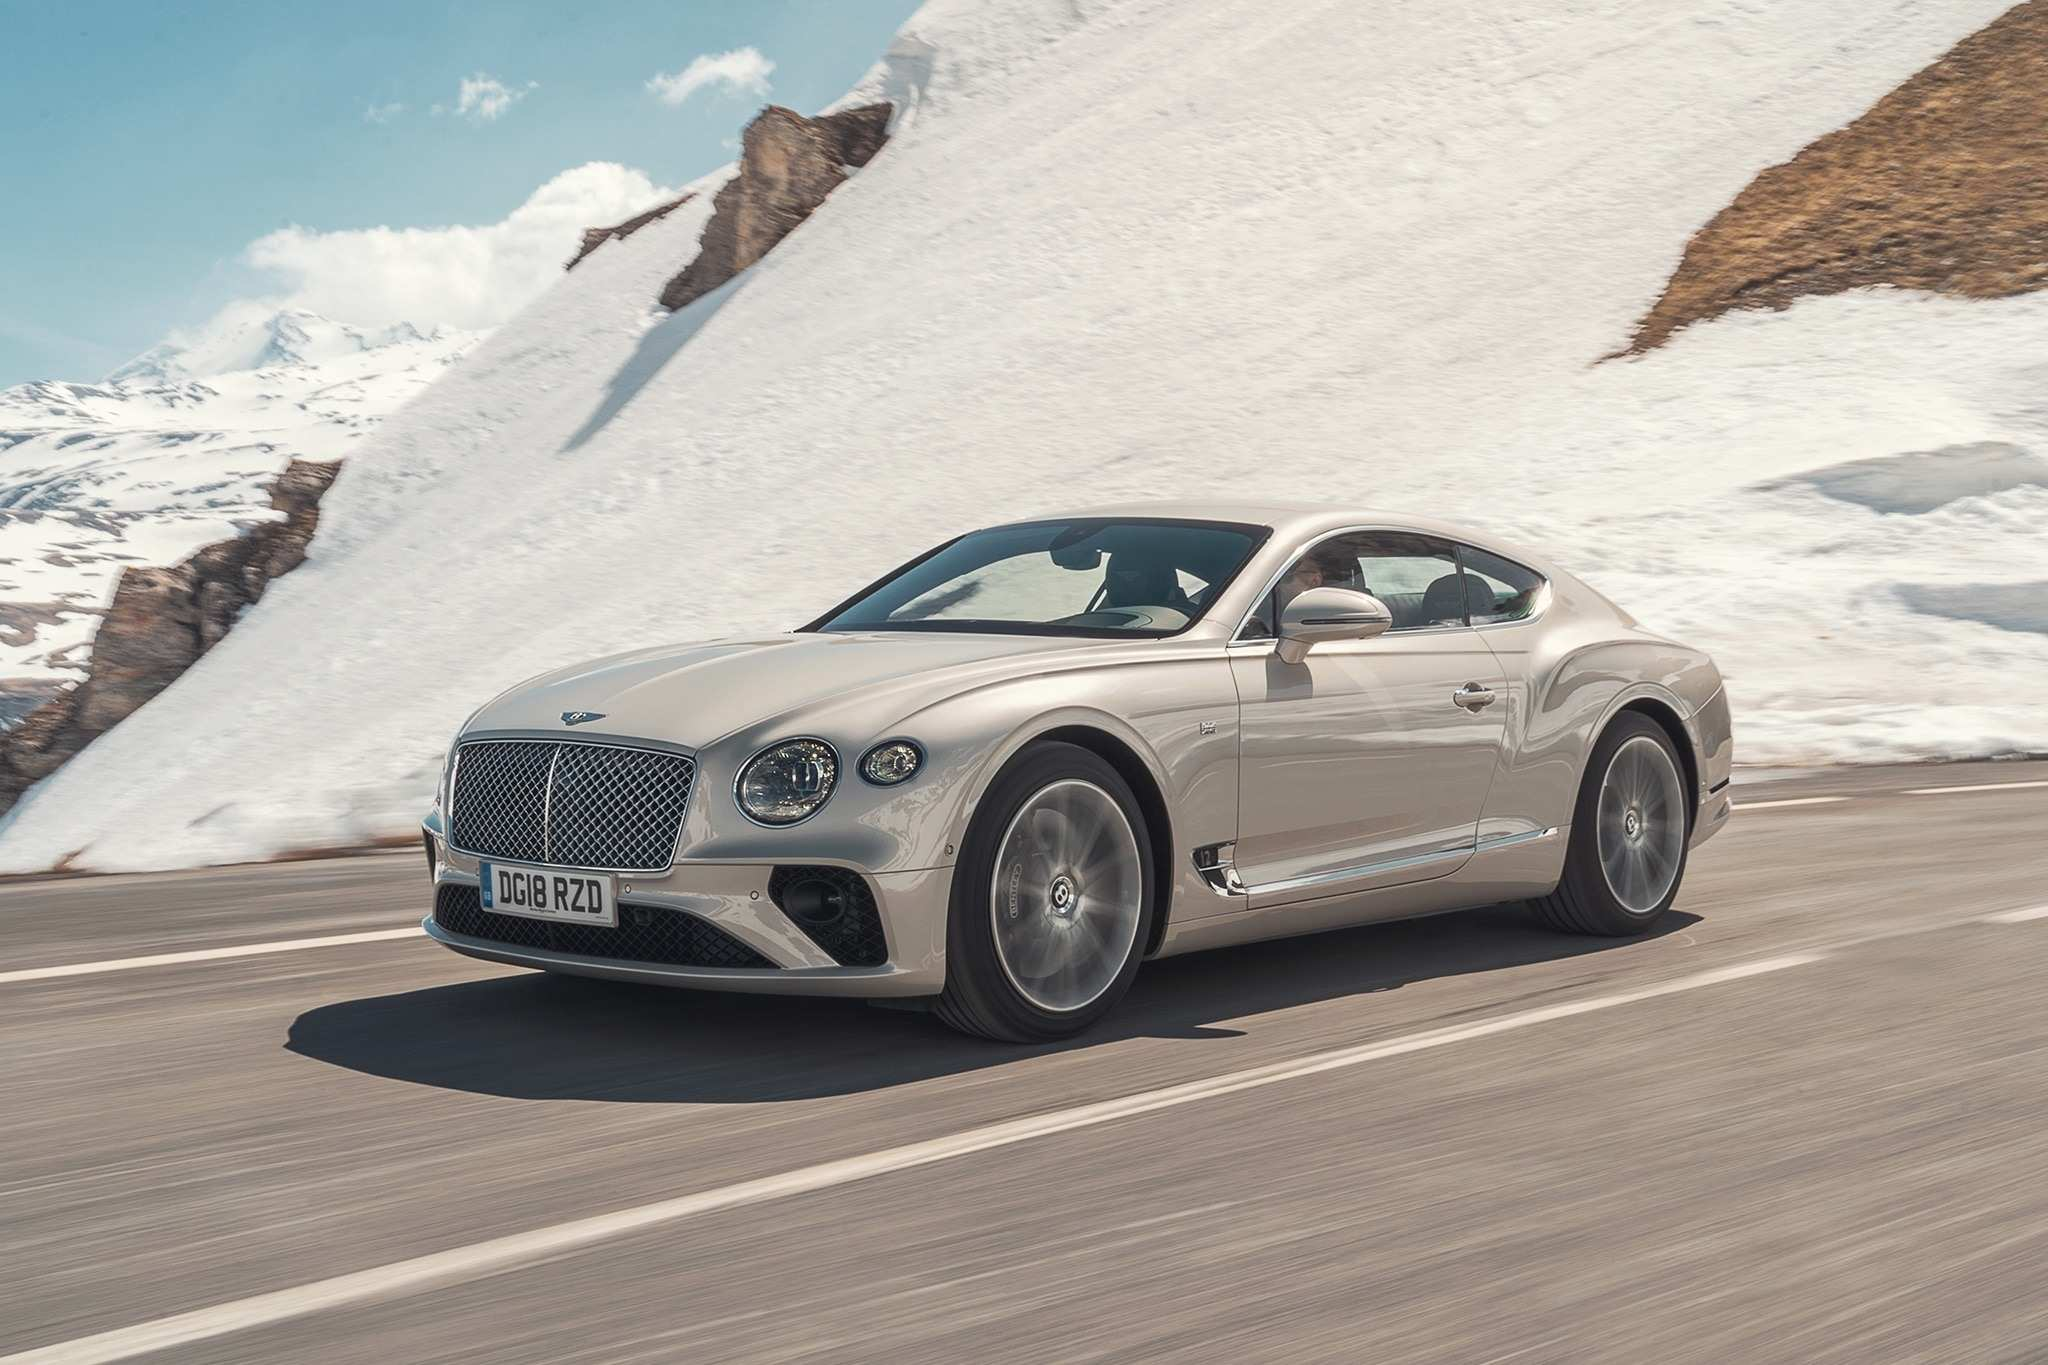 46 New 2019 Bentley Continental Gt Release Date Wallpaper for 2019 Bentley Continental Gt Release Date